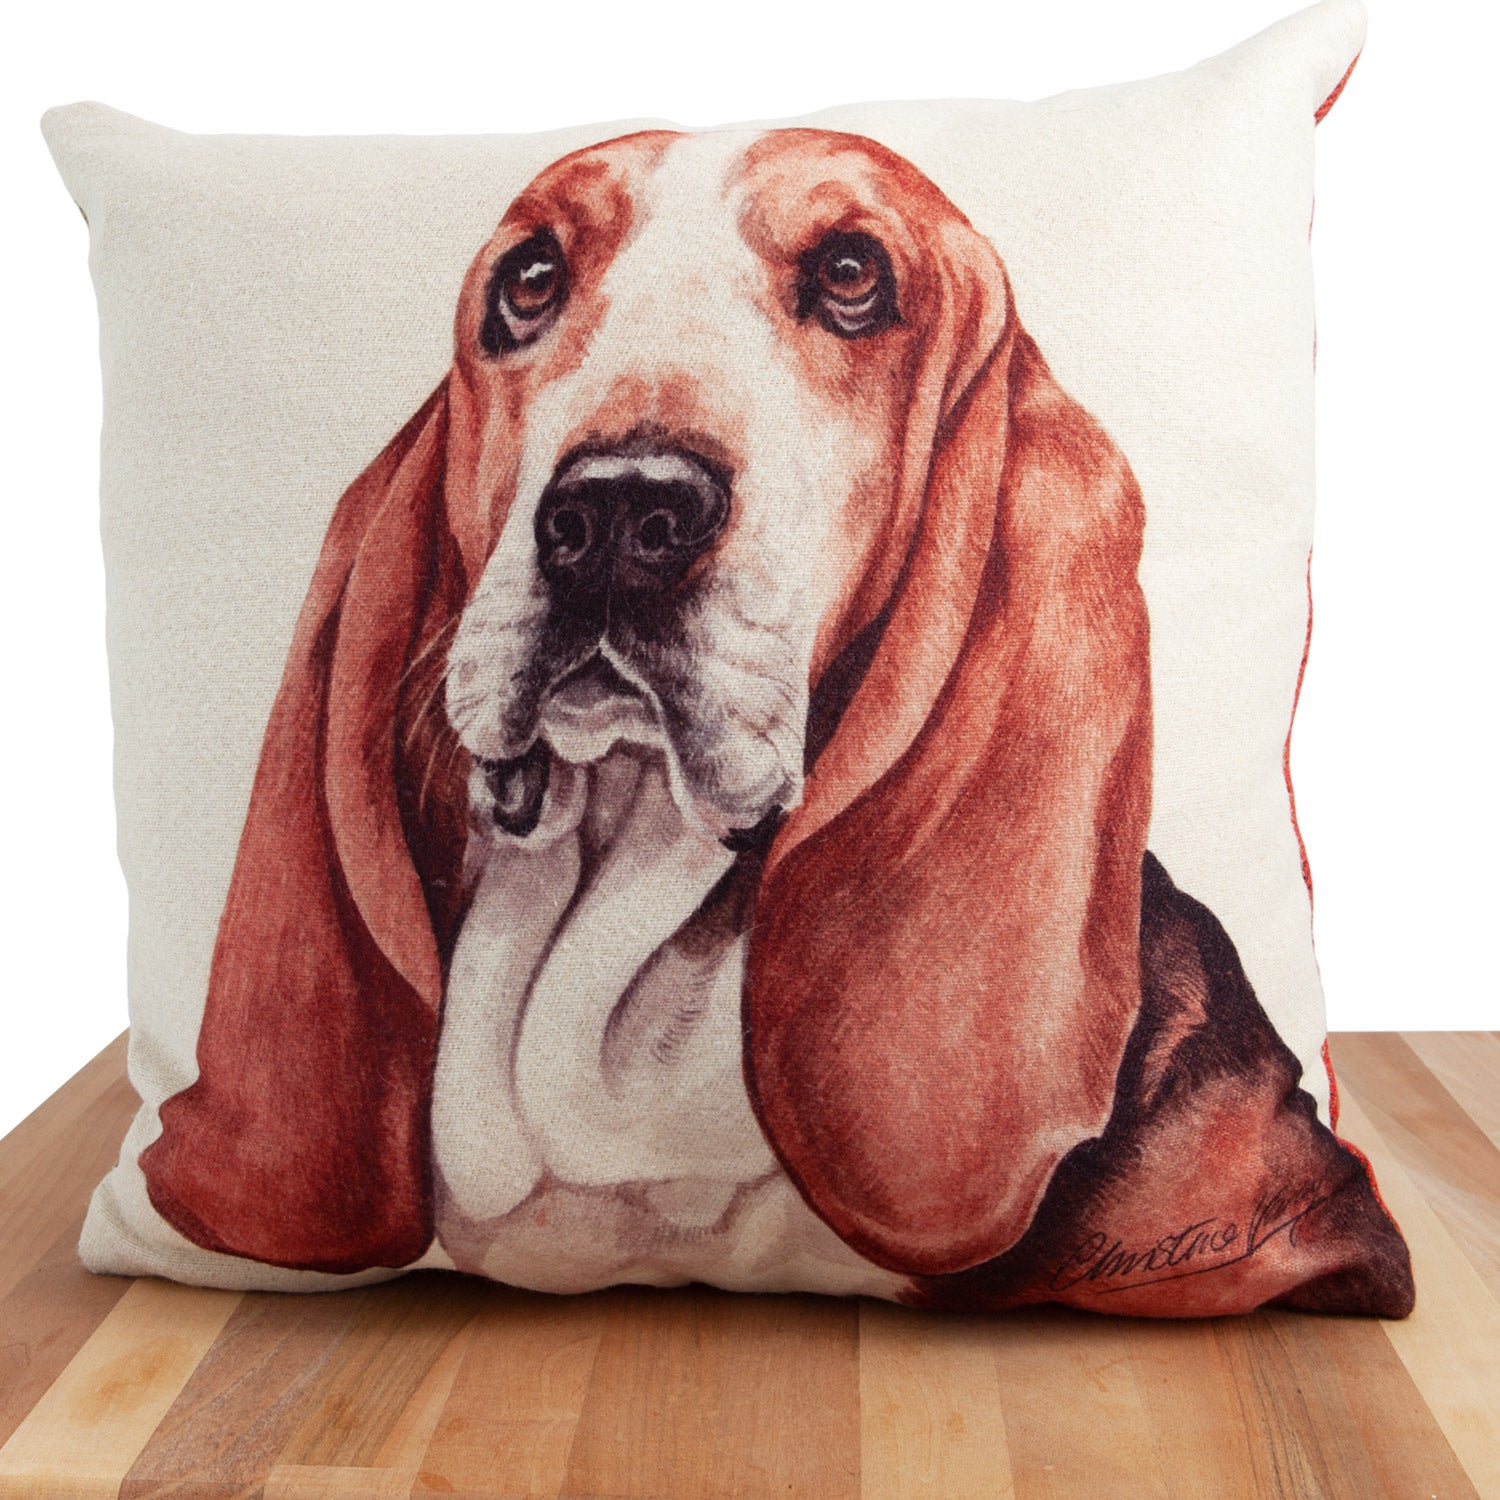 Dog Lover Gifts available at Dog Krazy Gifts. Basset Hound Cushion, part of our Christine Varley collection – available at www.dogkrazygifts.co.uk